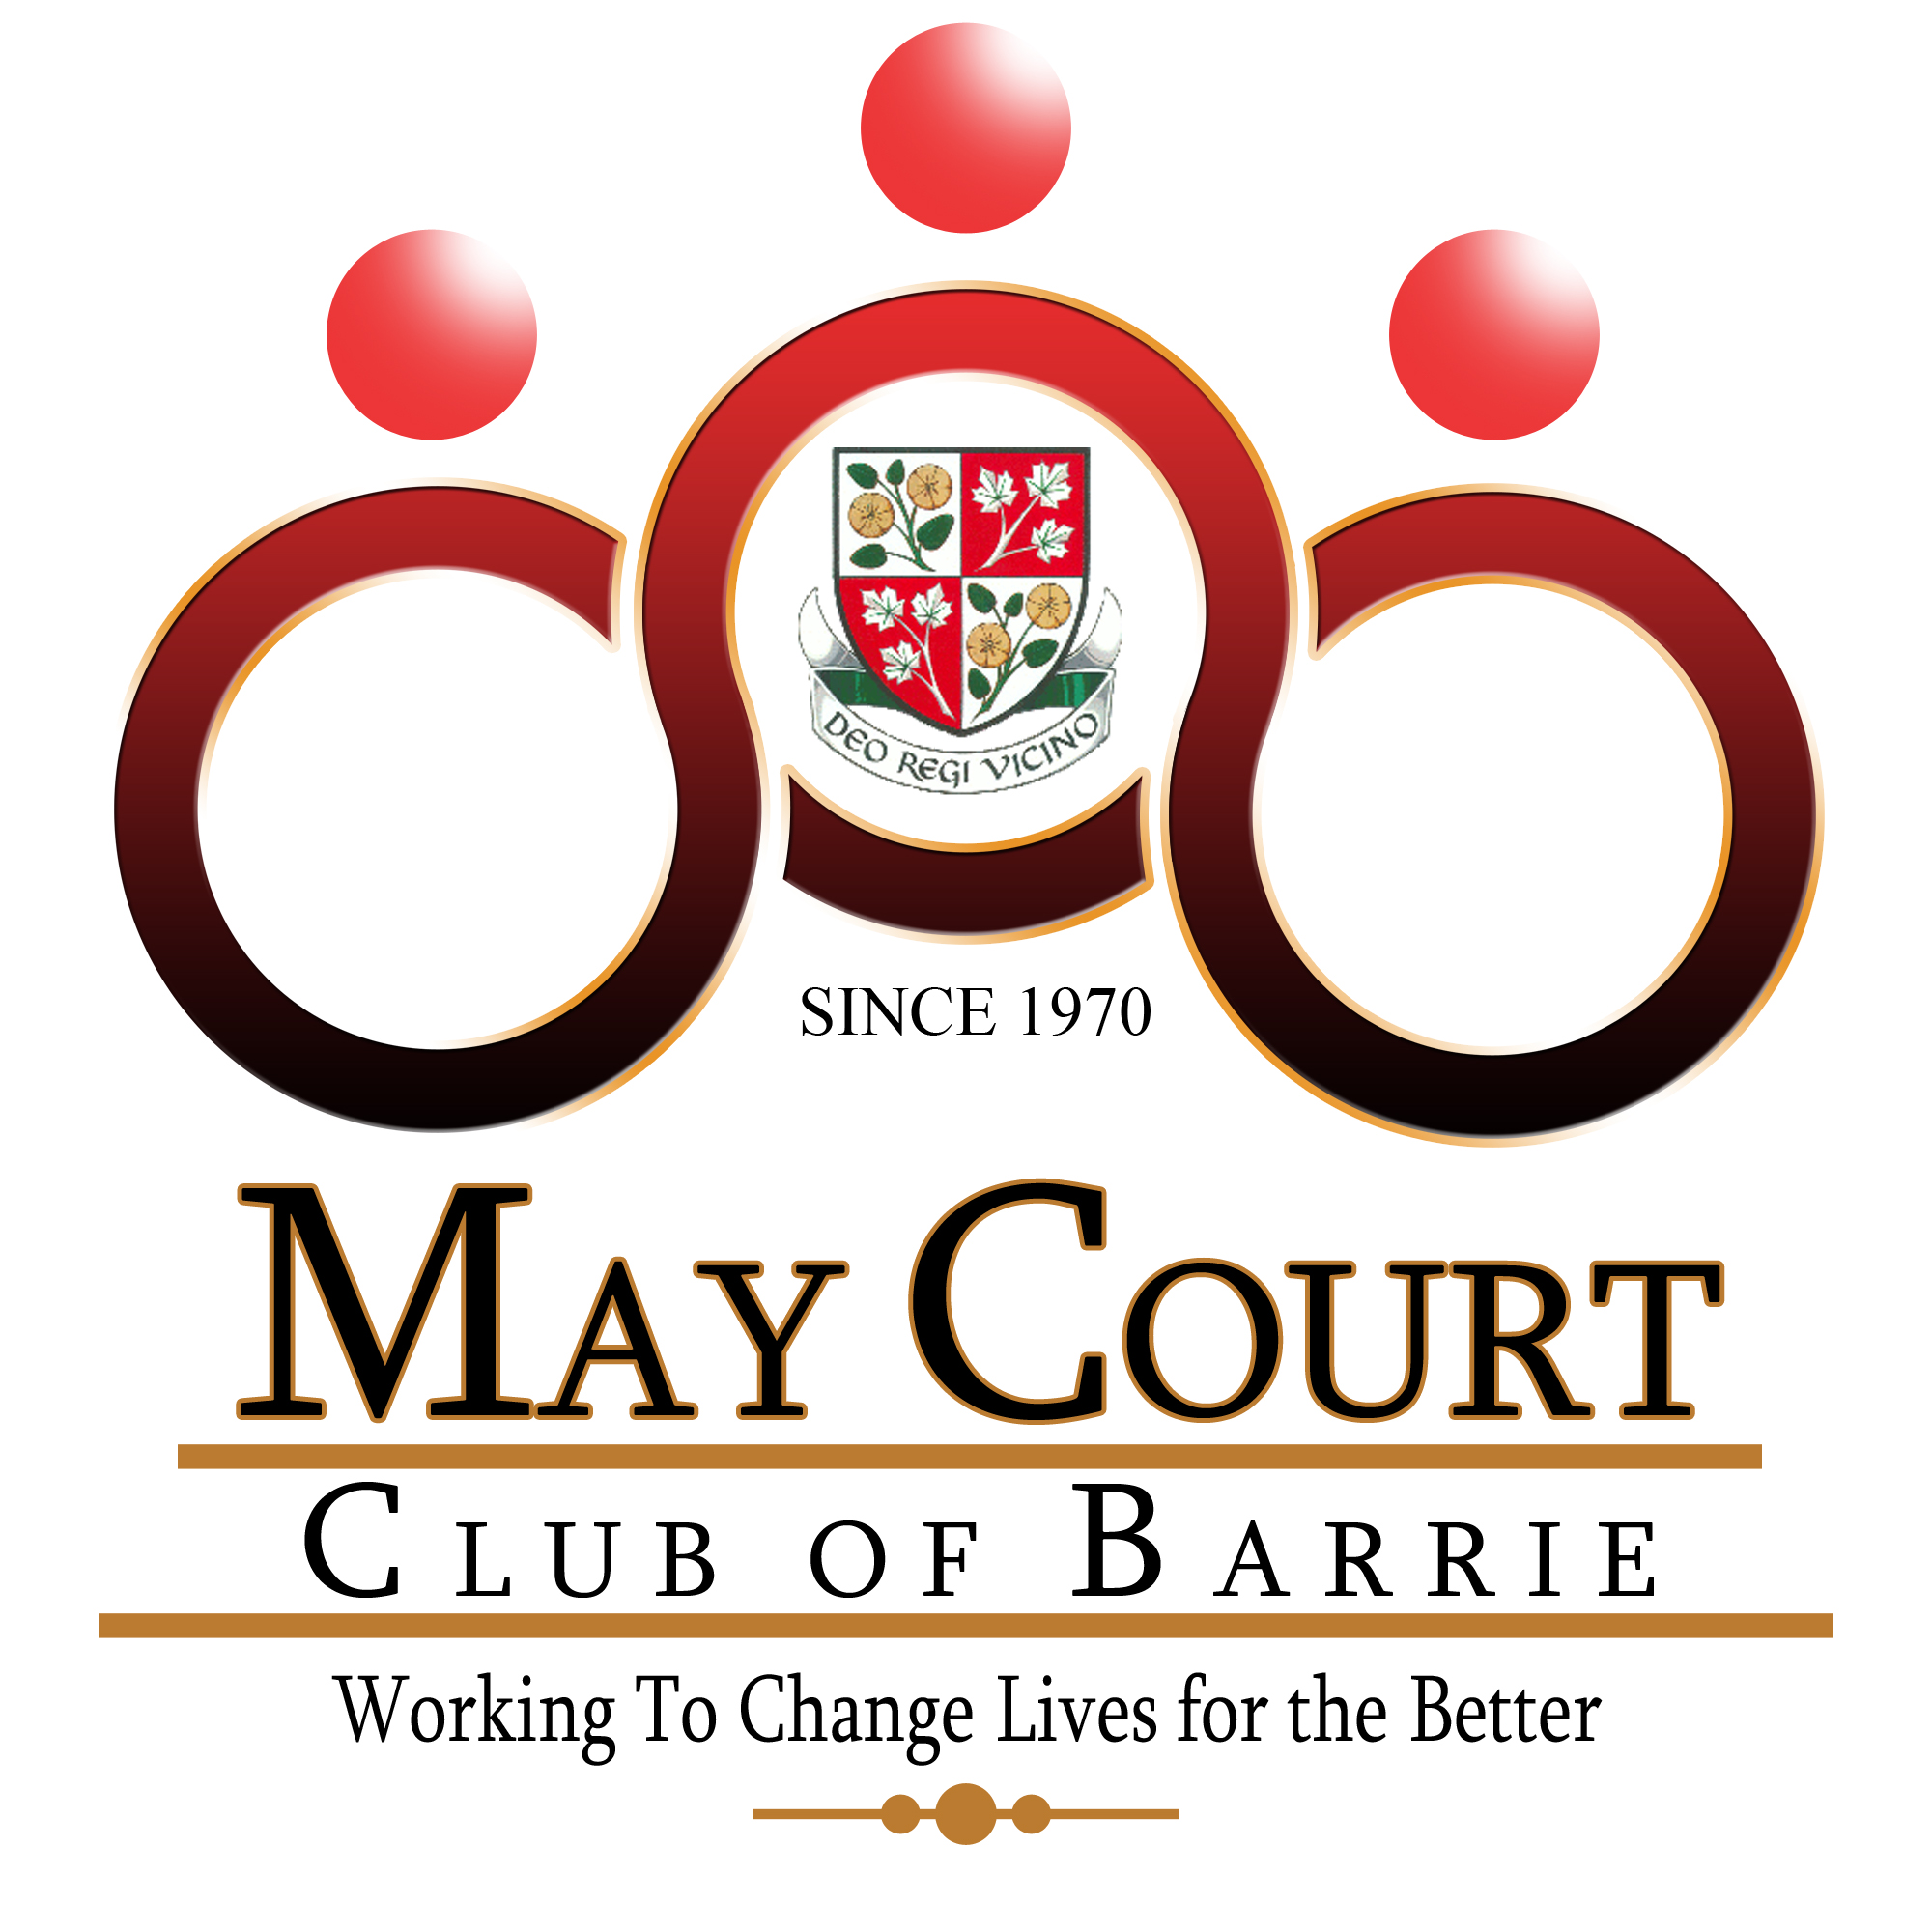 Logo Design by Ervin Beñez - Entry No. 104 in the Logo Design Contest New Logo Design for MAY COURT CLUB OF BARRIE.